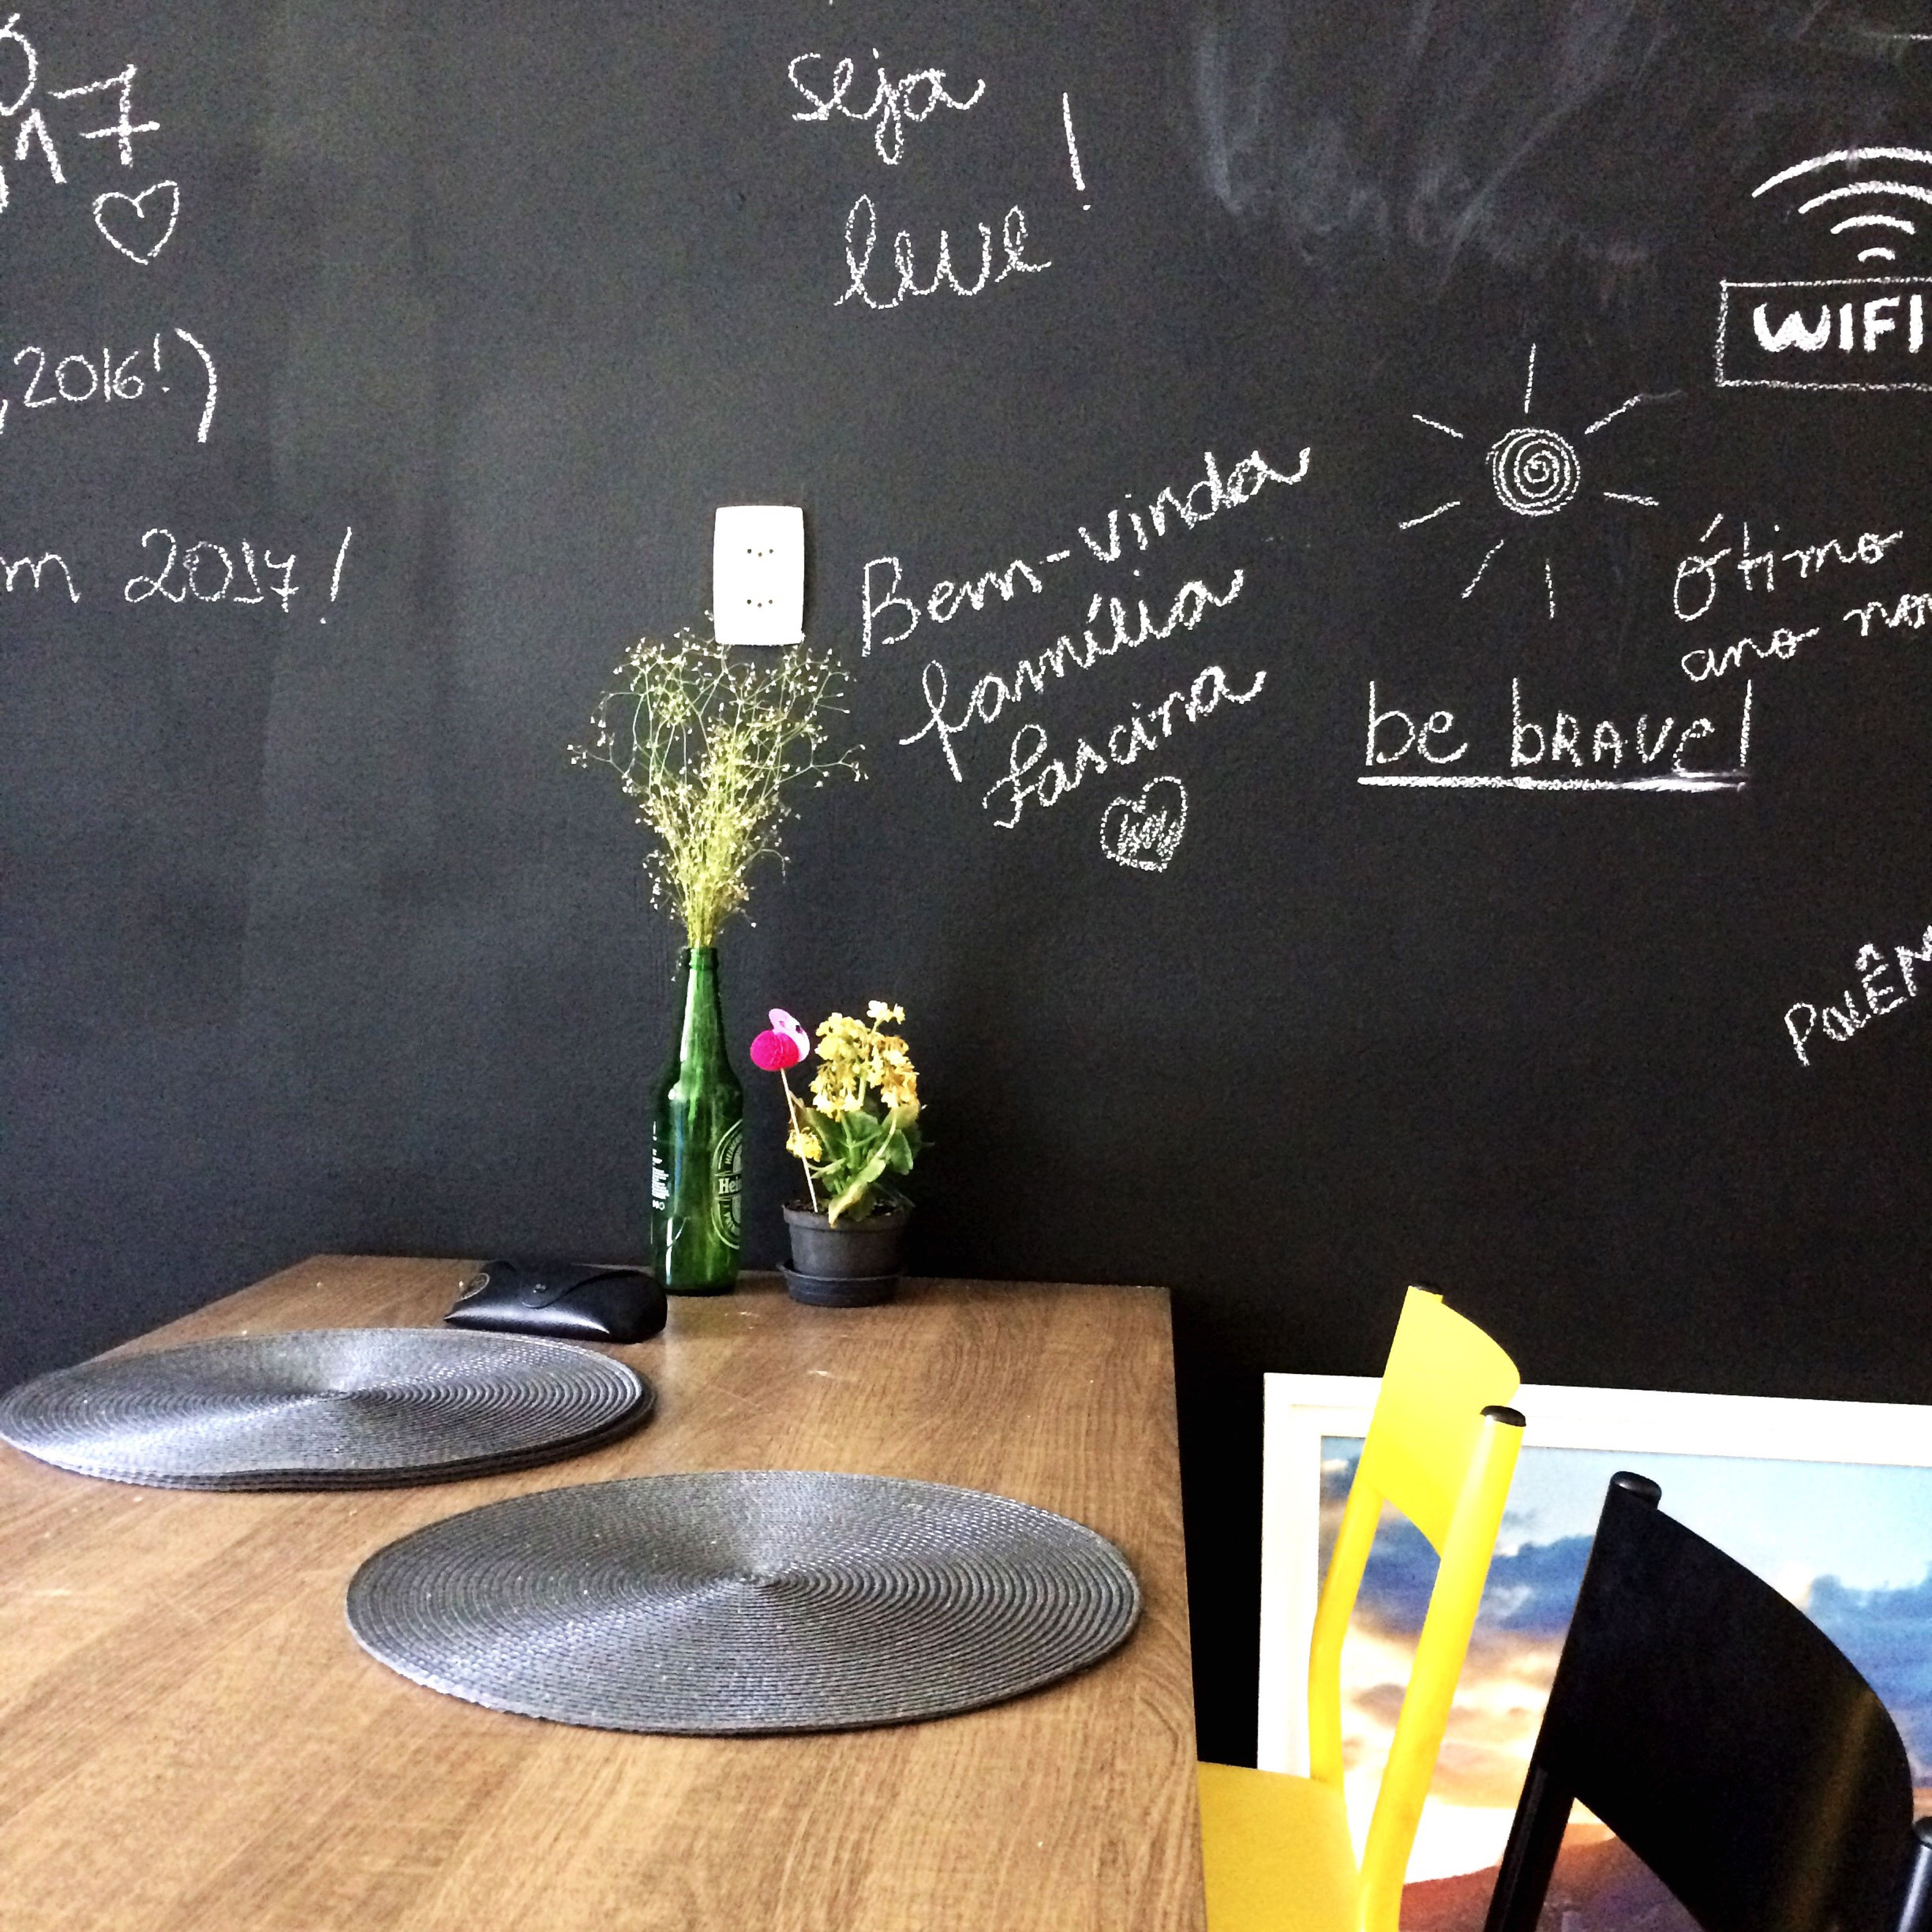 blackboard, creativity, table, indoors, no people, variation, text, handwriting, drawing - art product, close-up, day, formula